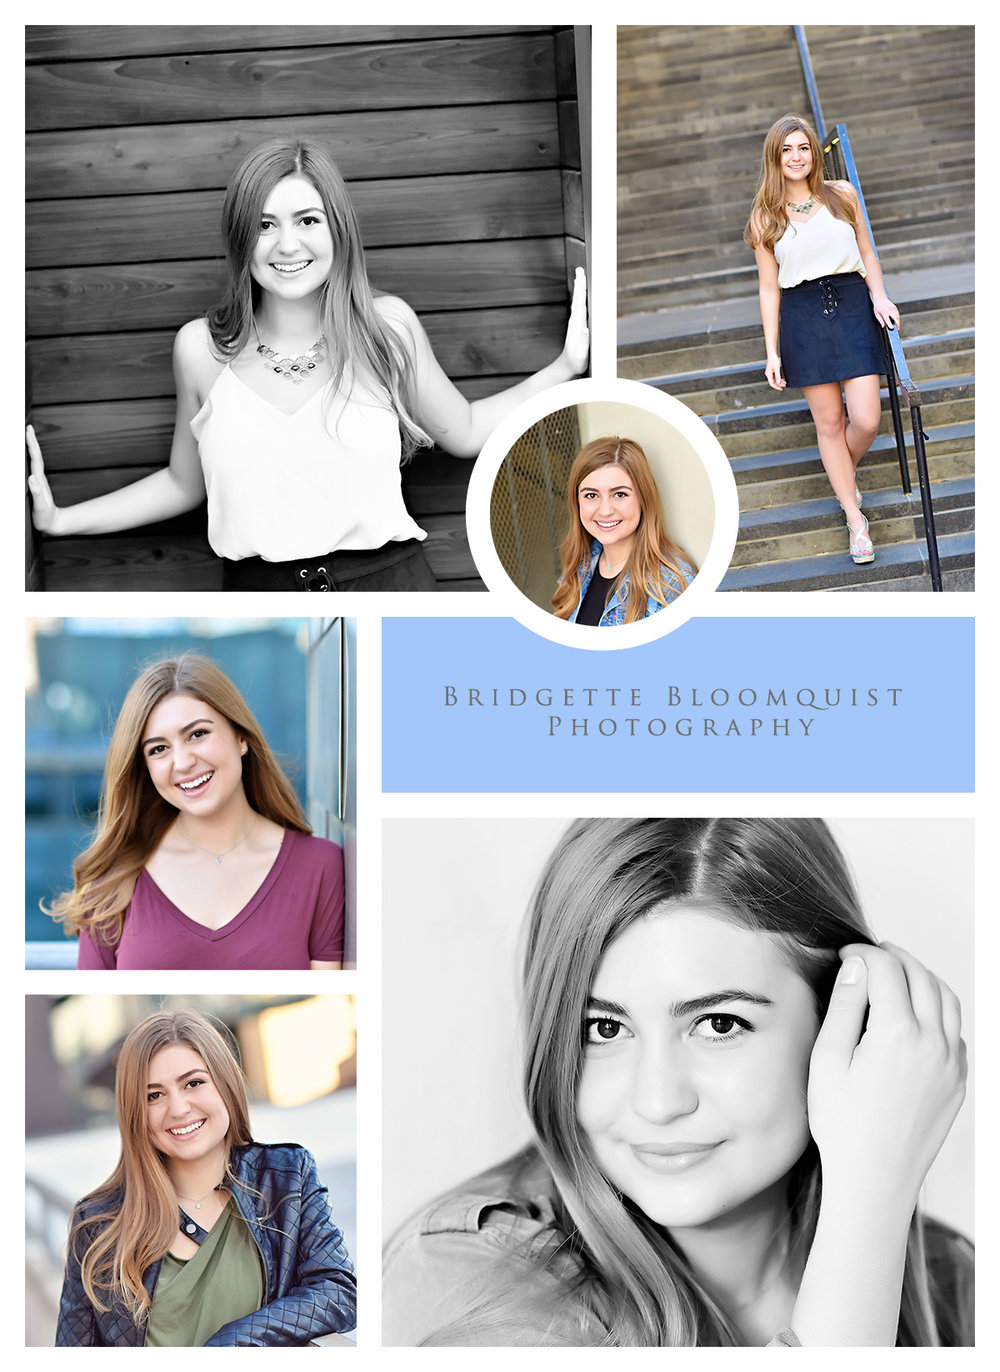 Bridgette Bloomquist Photography